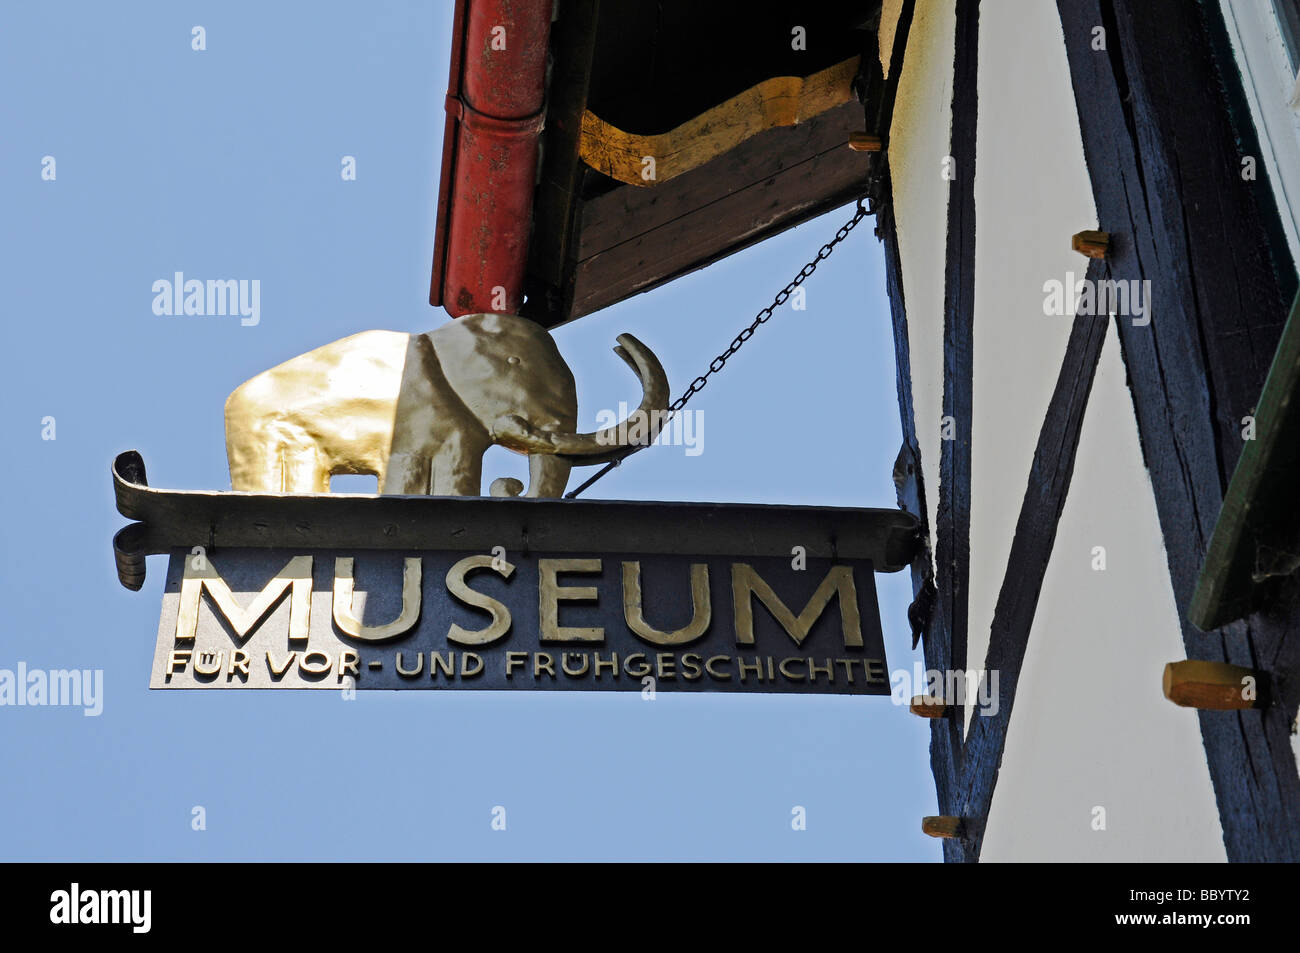 Elephant, sign, the museum of Pre-and Early History, Luisenhuette, cultural monument, Naturpark nature reserve Homert, - Stock Image